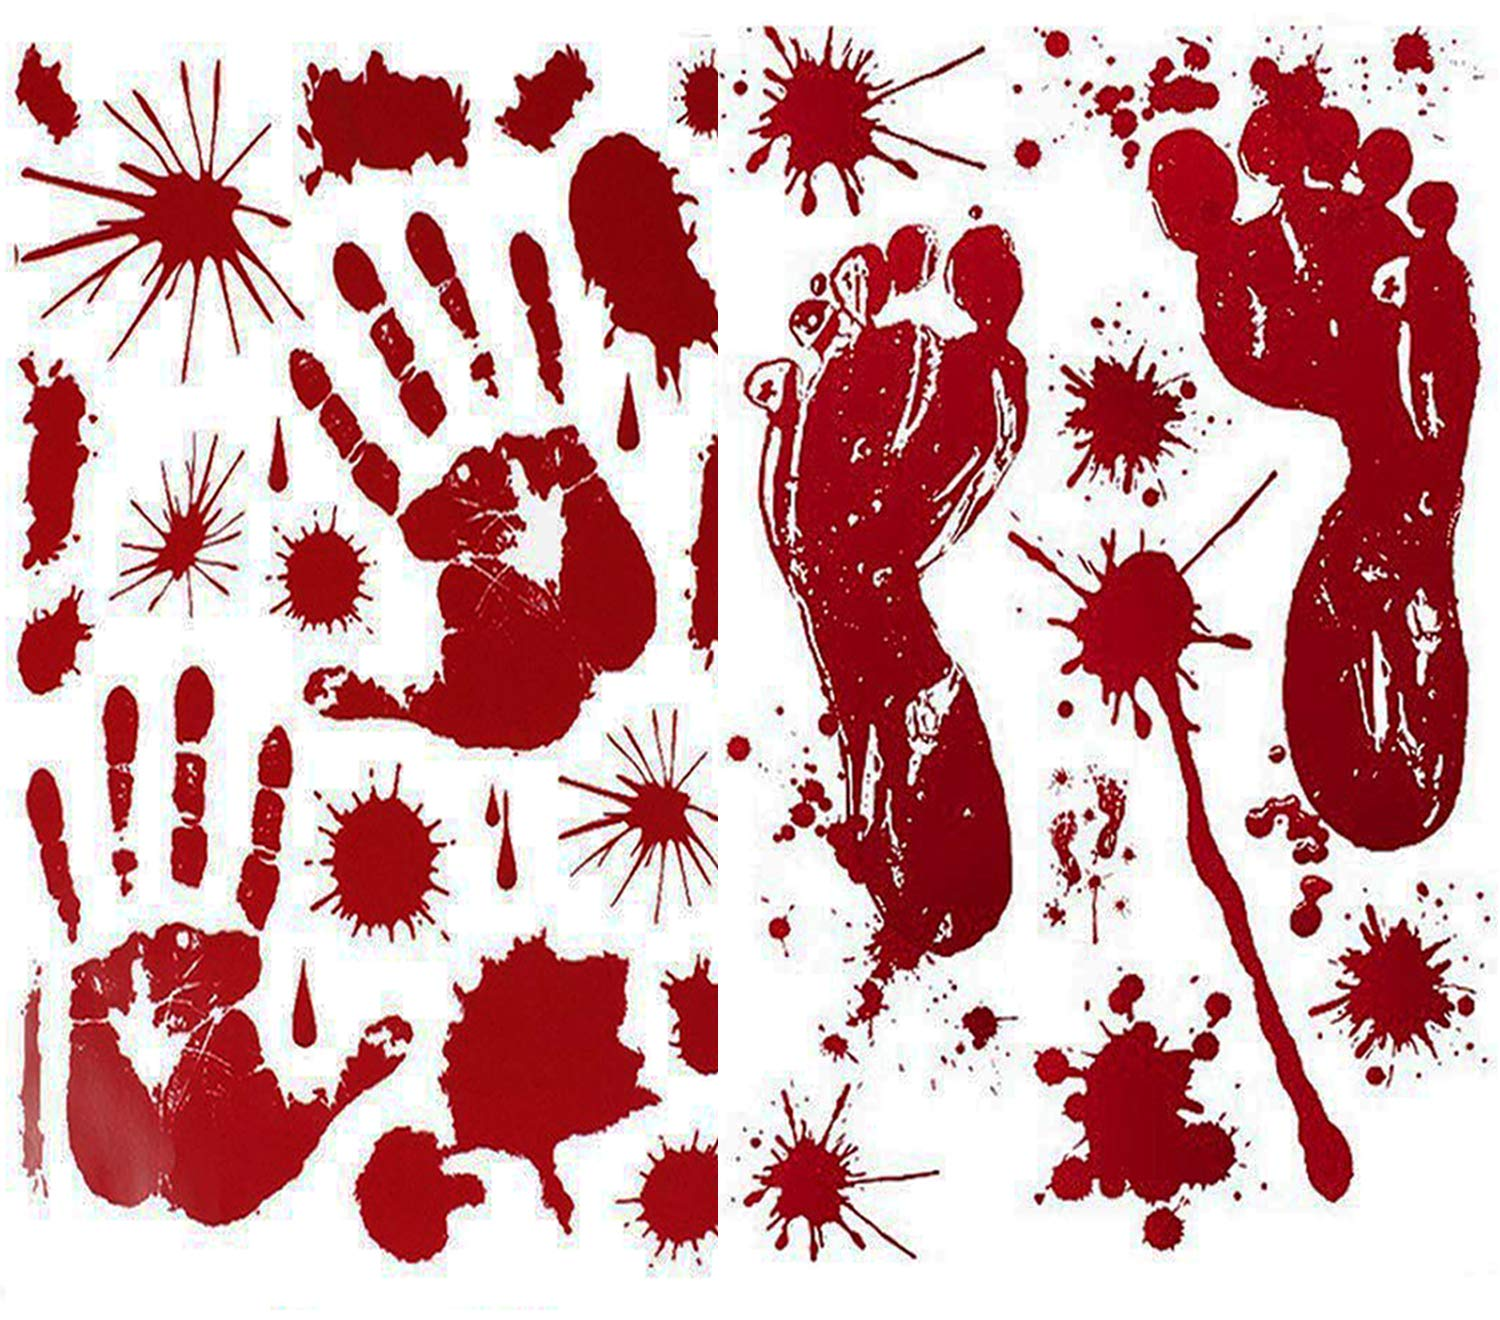 LKDEPO 6 Sheets(120Pcs)Halloween Bloody Handprint Footprint Decals Stickers Decorations - Halloween Party Supplies - Vampire Zombie Fake Bloody Print For Window Wall Floor Bathtub Clings Decals Decor